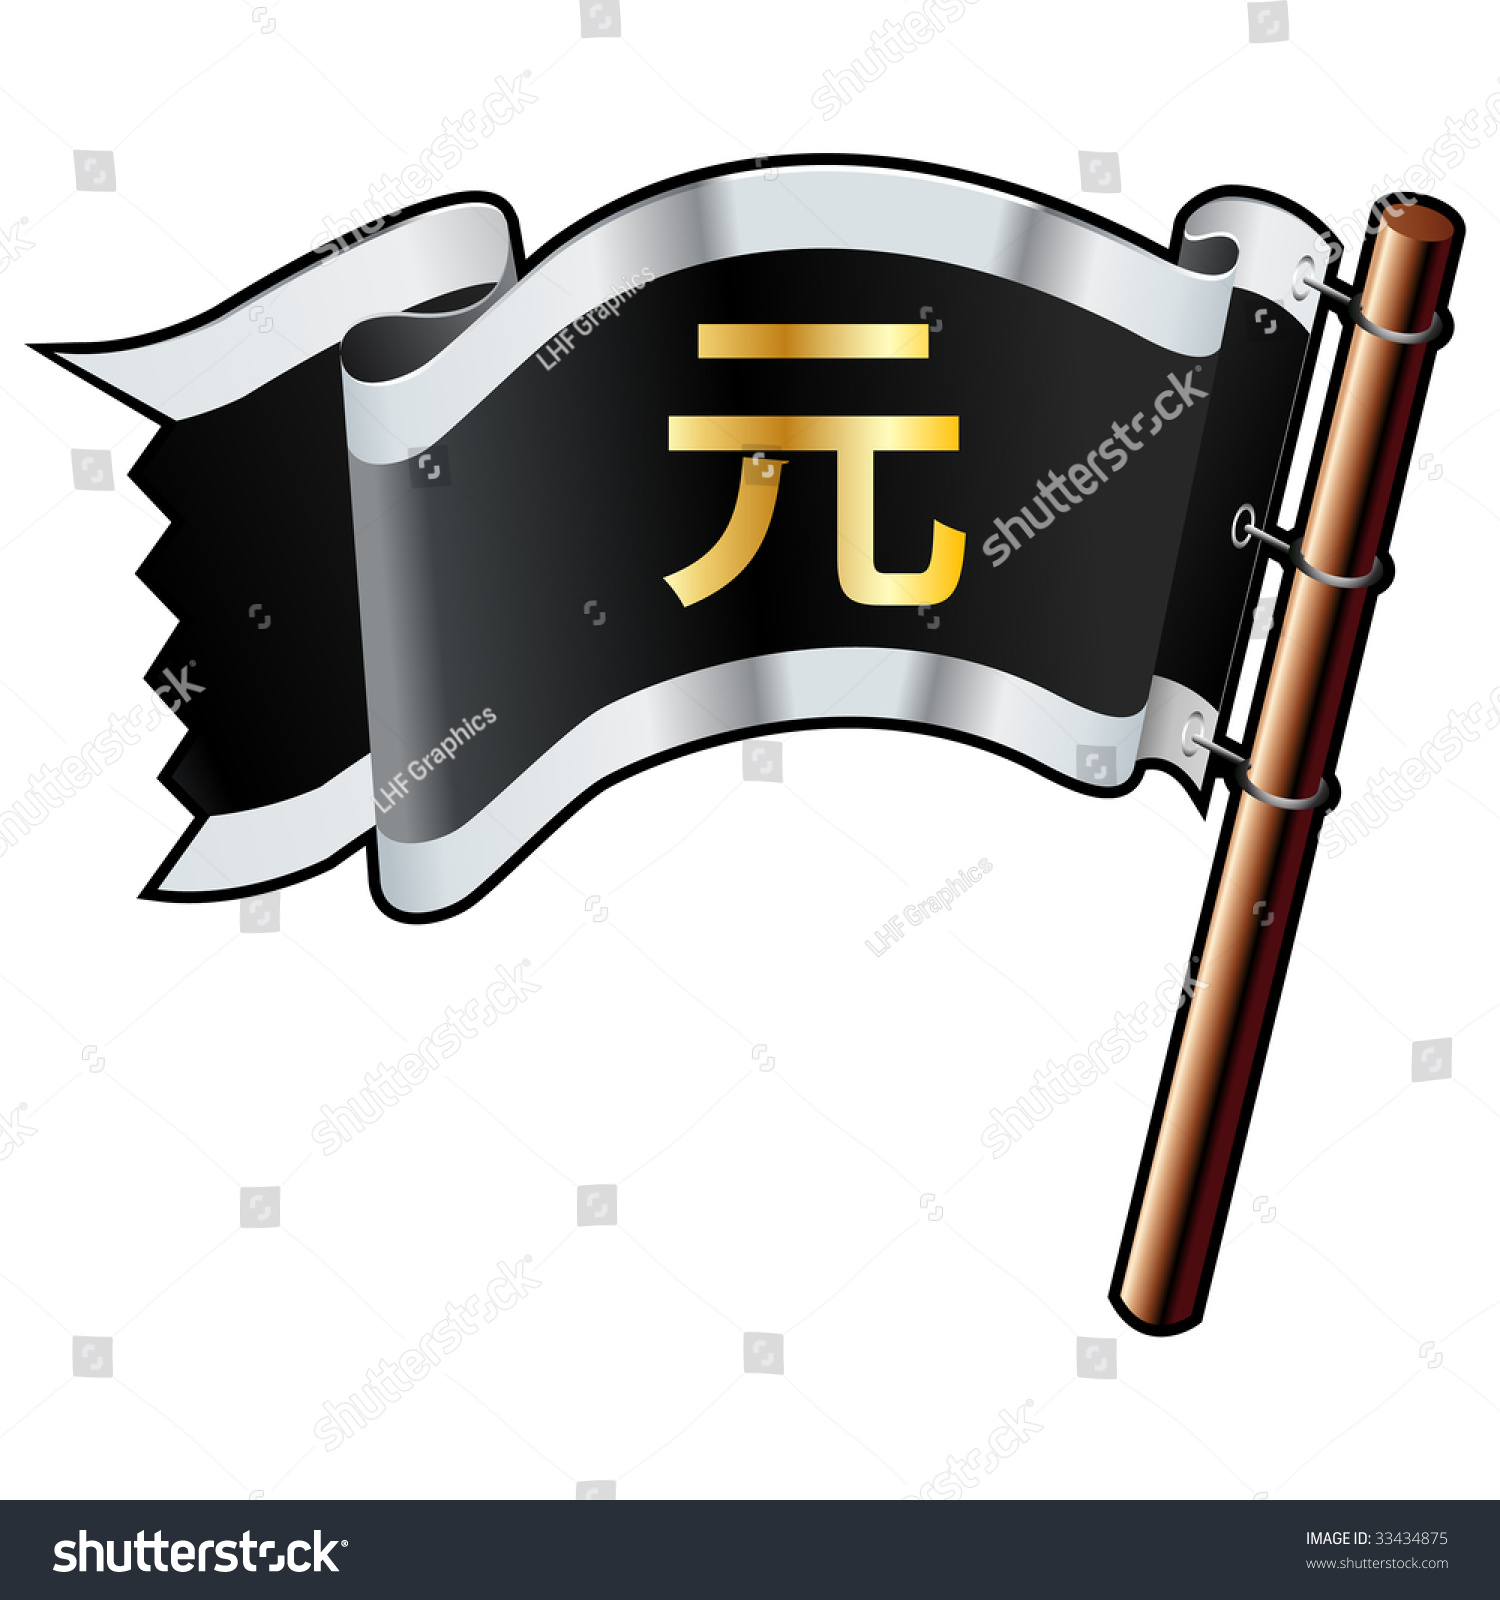 Chinese yuan currency symbol on black stock vector 33434875 chinese yuan currency symbol on black silver and gold vector flag good for use biocorpaavc Image collections